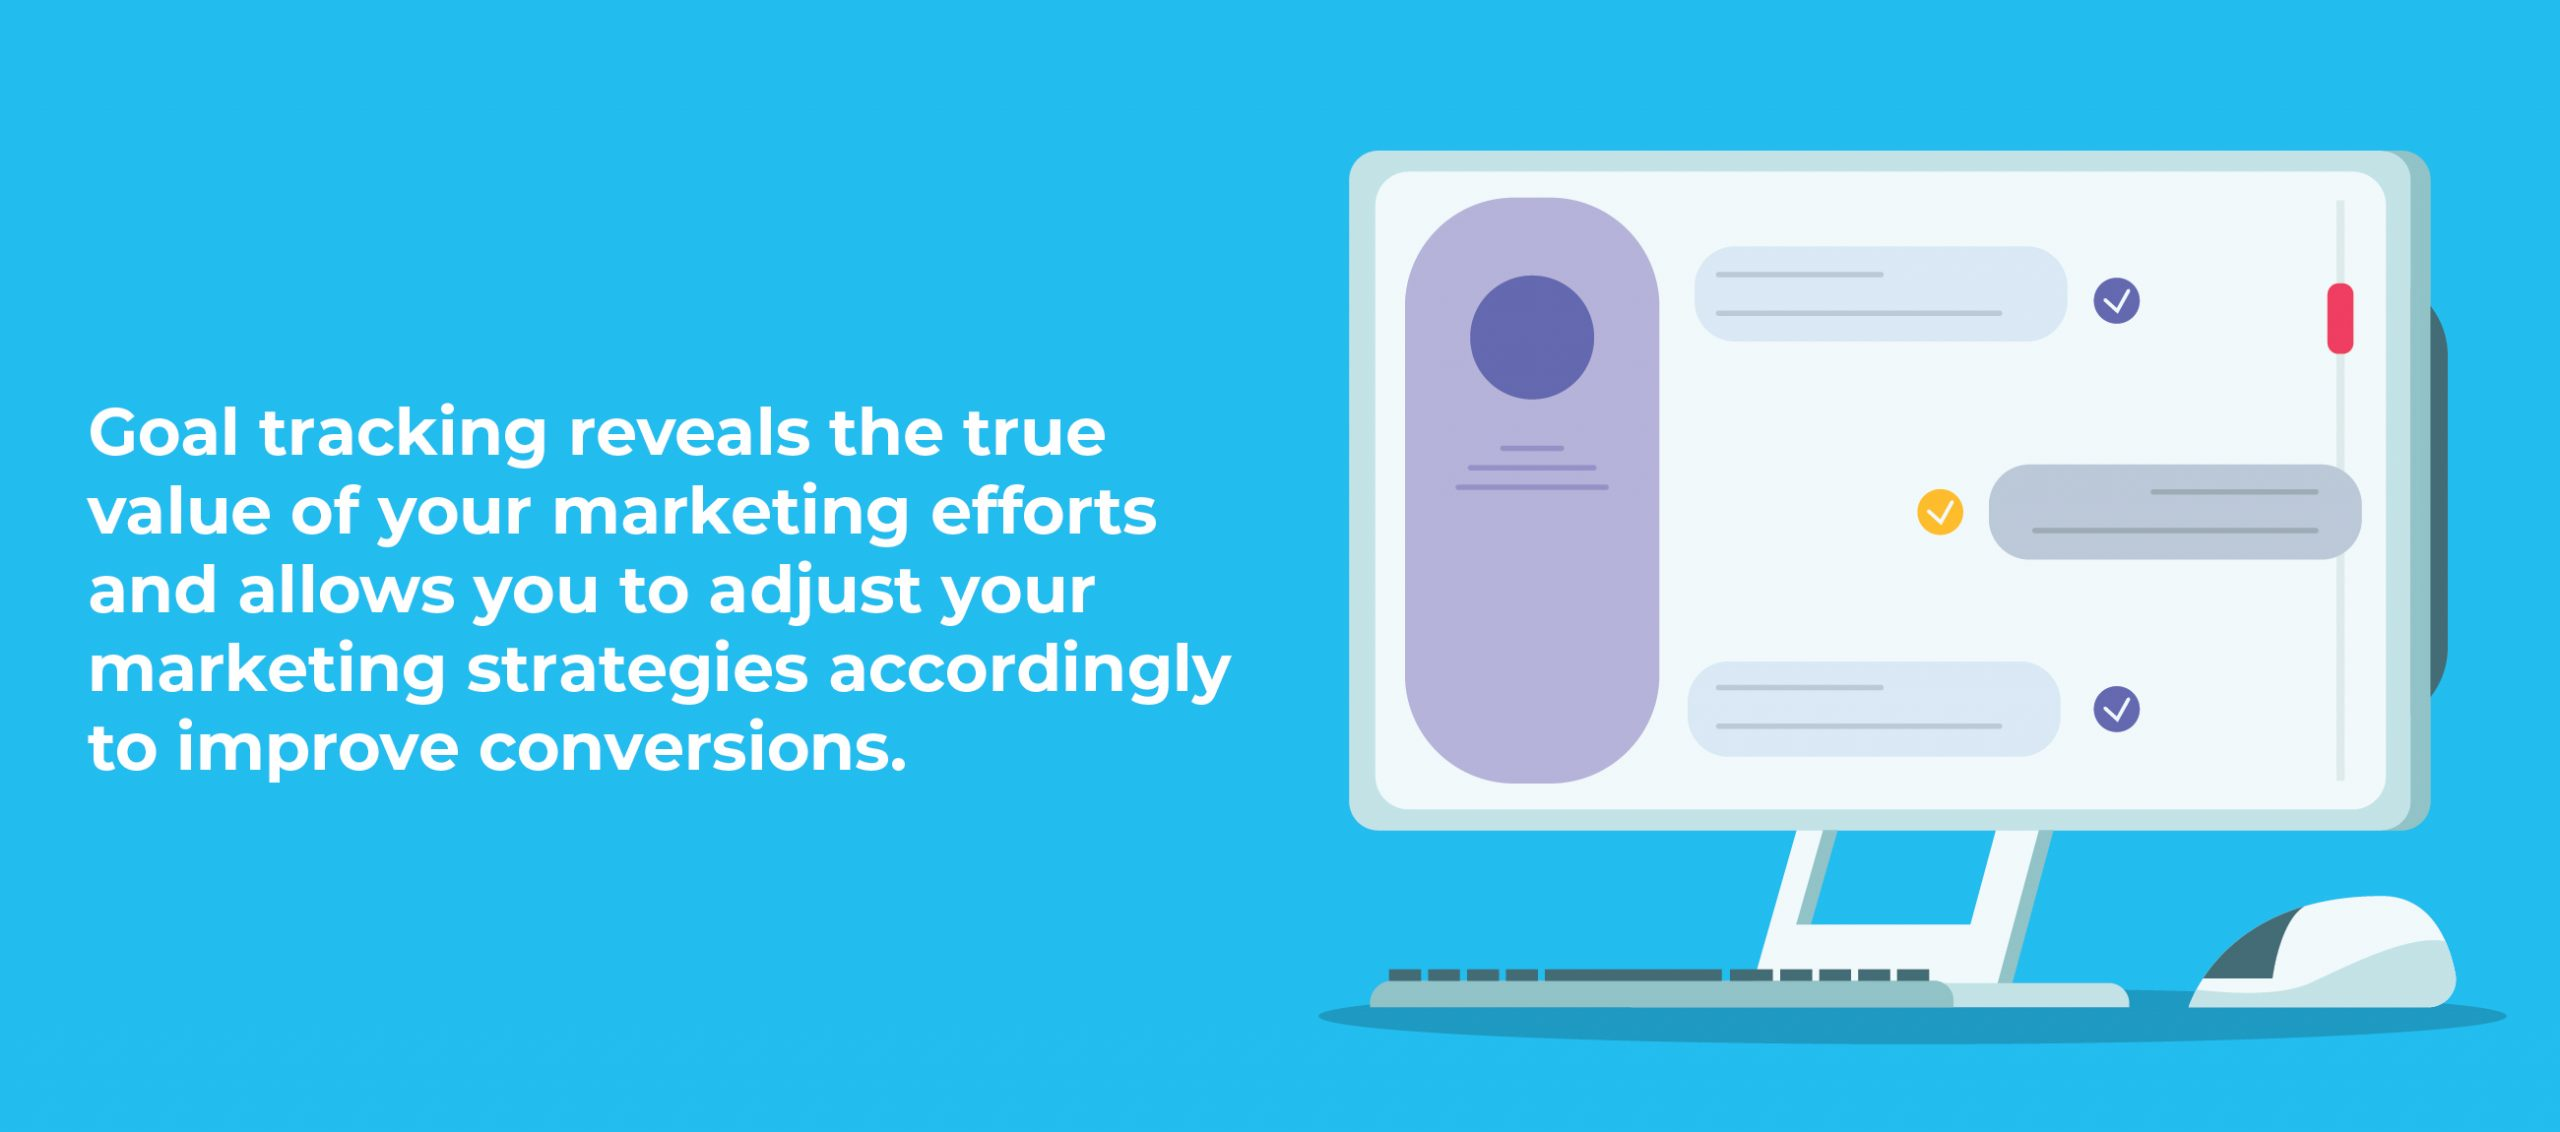 Goal tracking reveals the true value of your marketing efforts and allows you to adjust your marketing strategies accordingly to improve conversions.